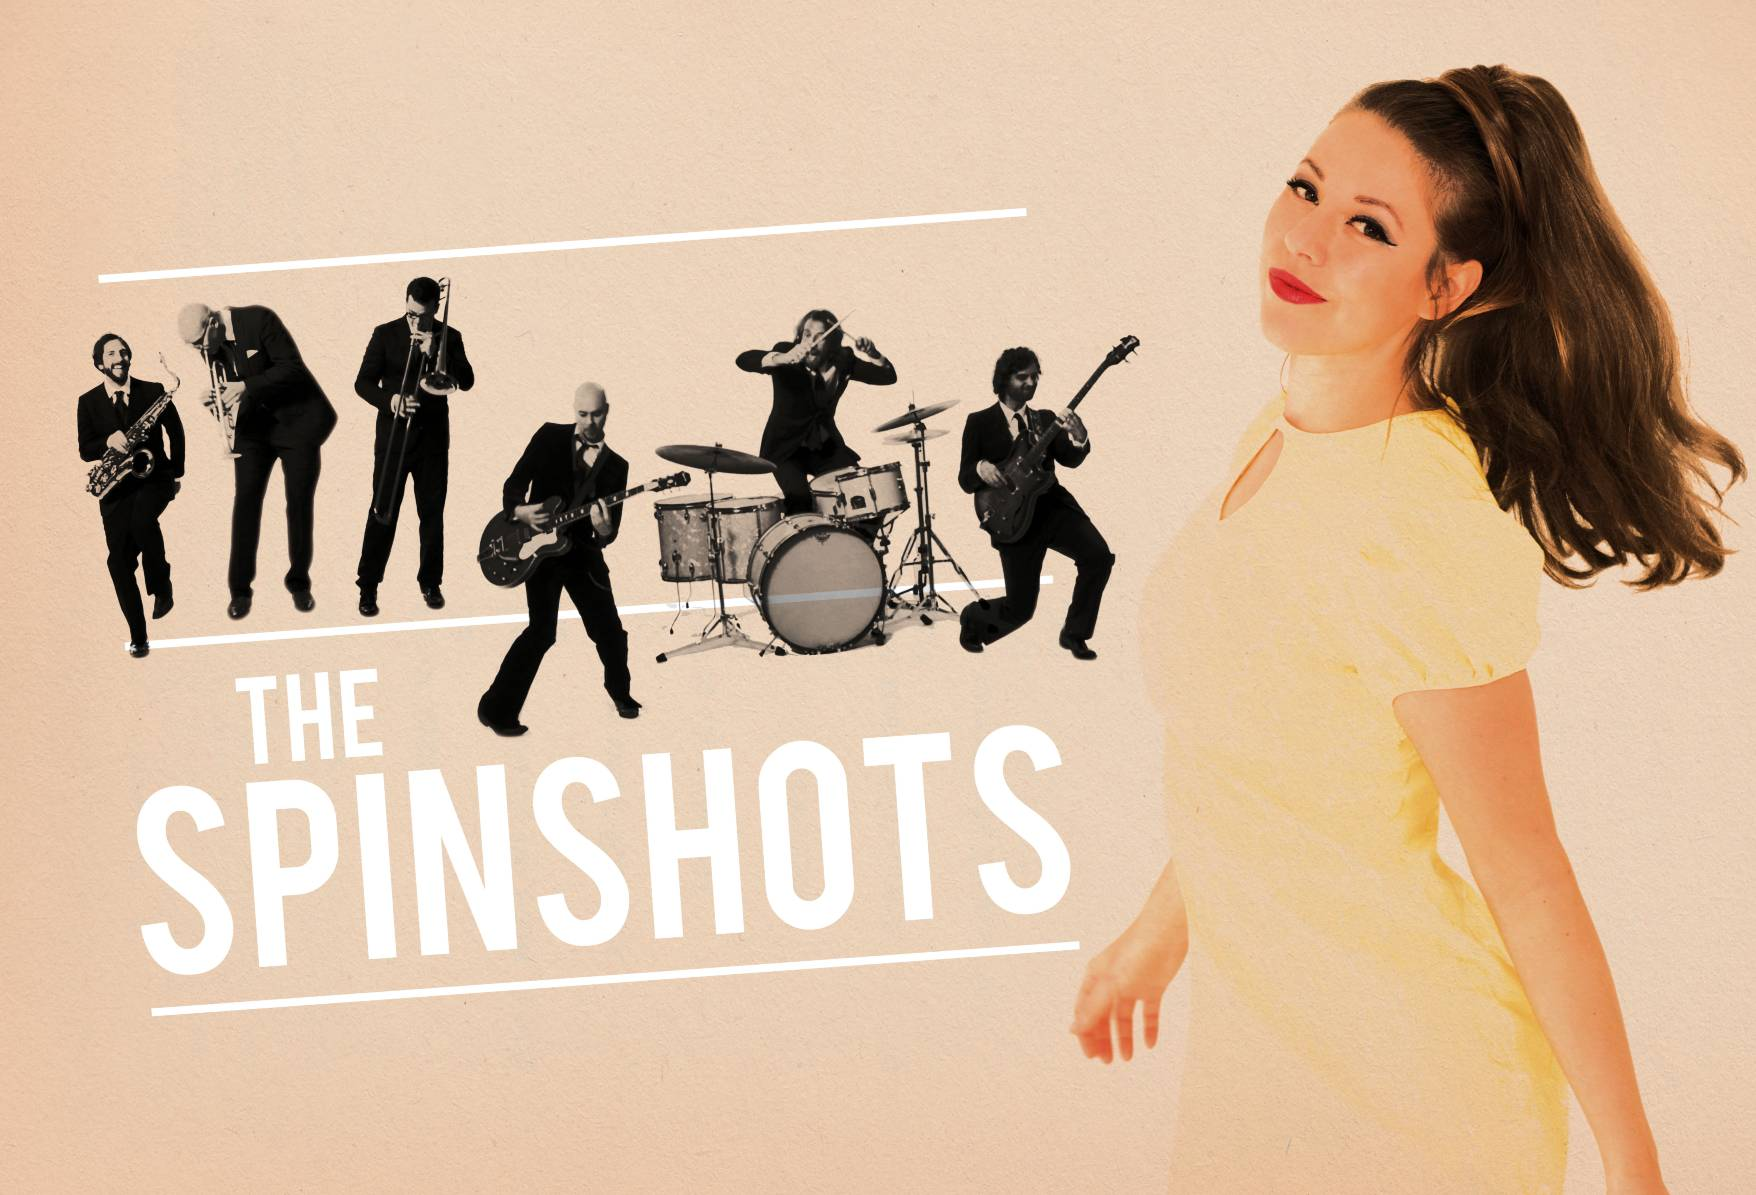 TheSpinshots